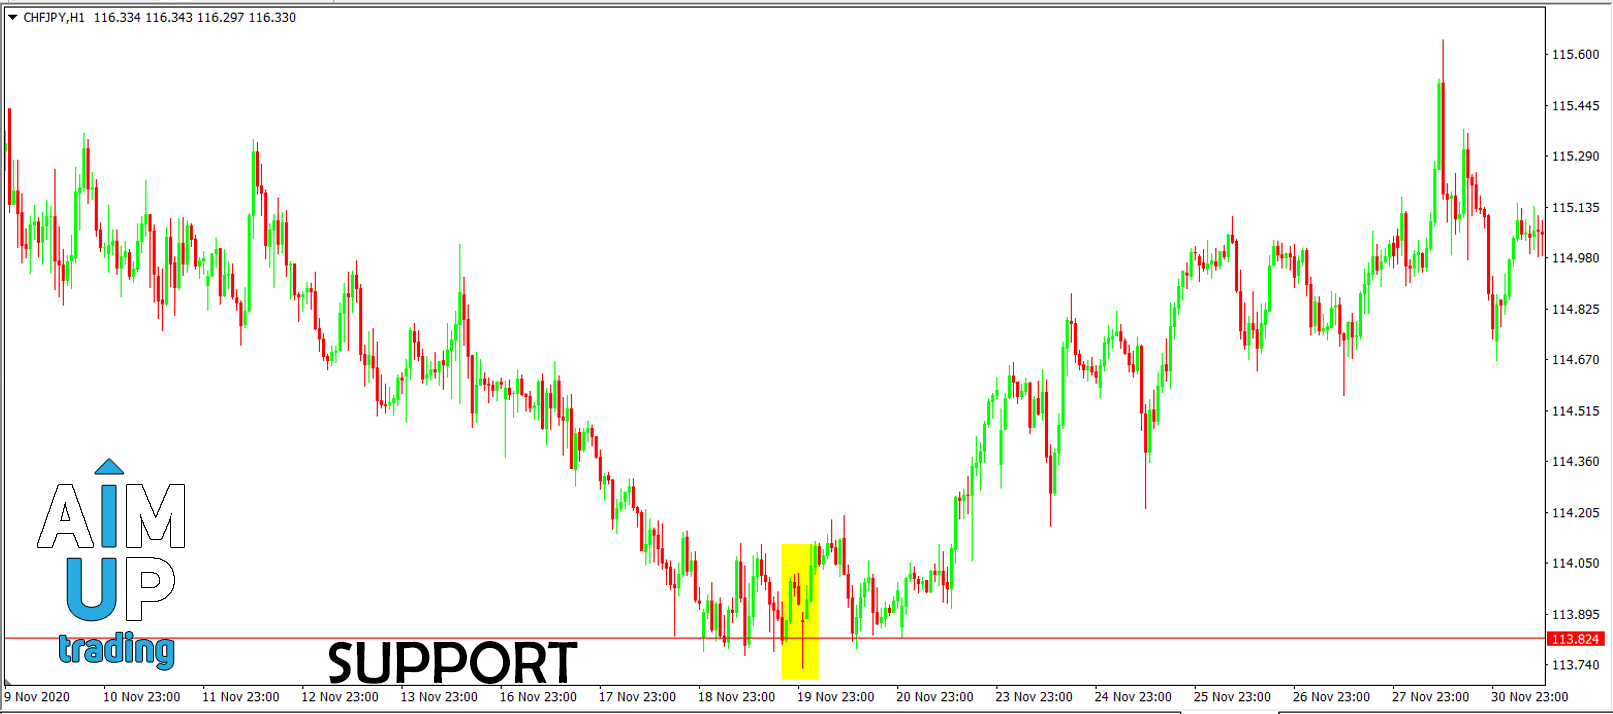 forex support and resistance levels.